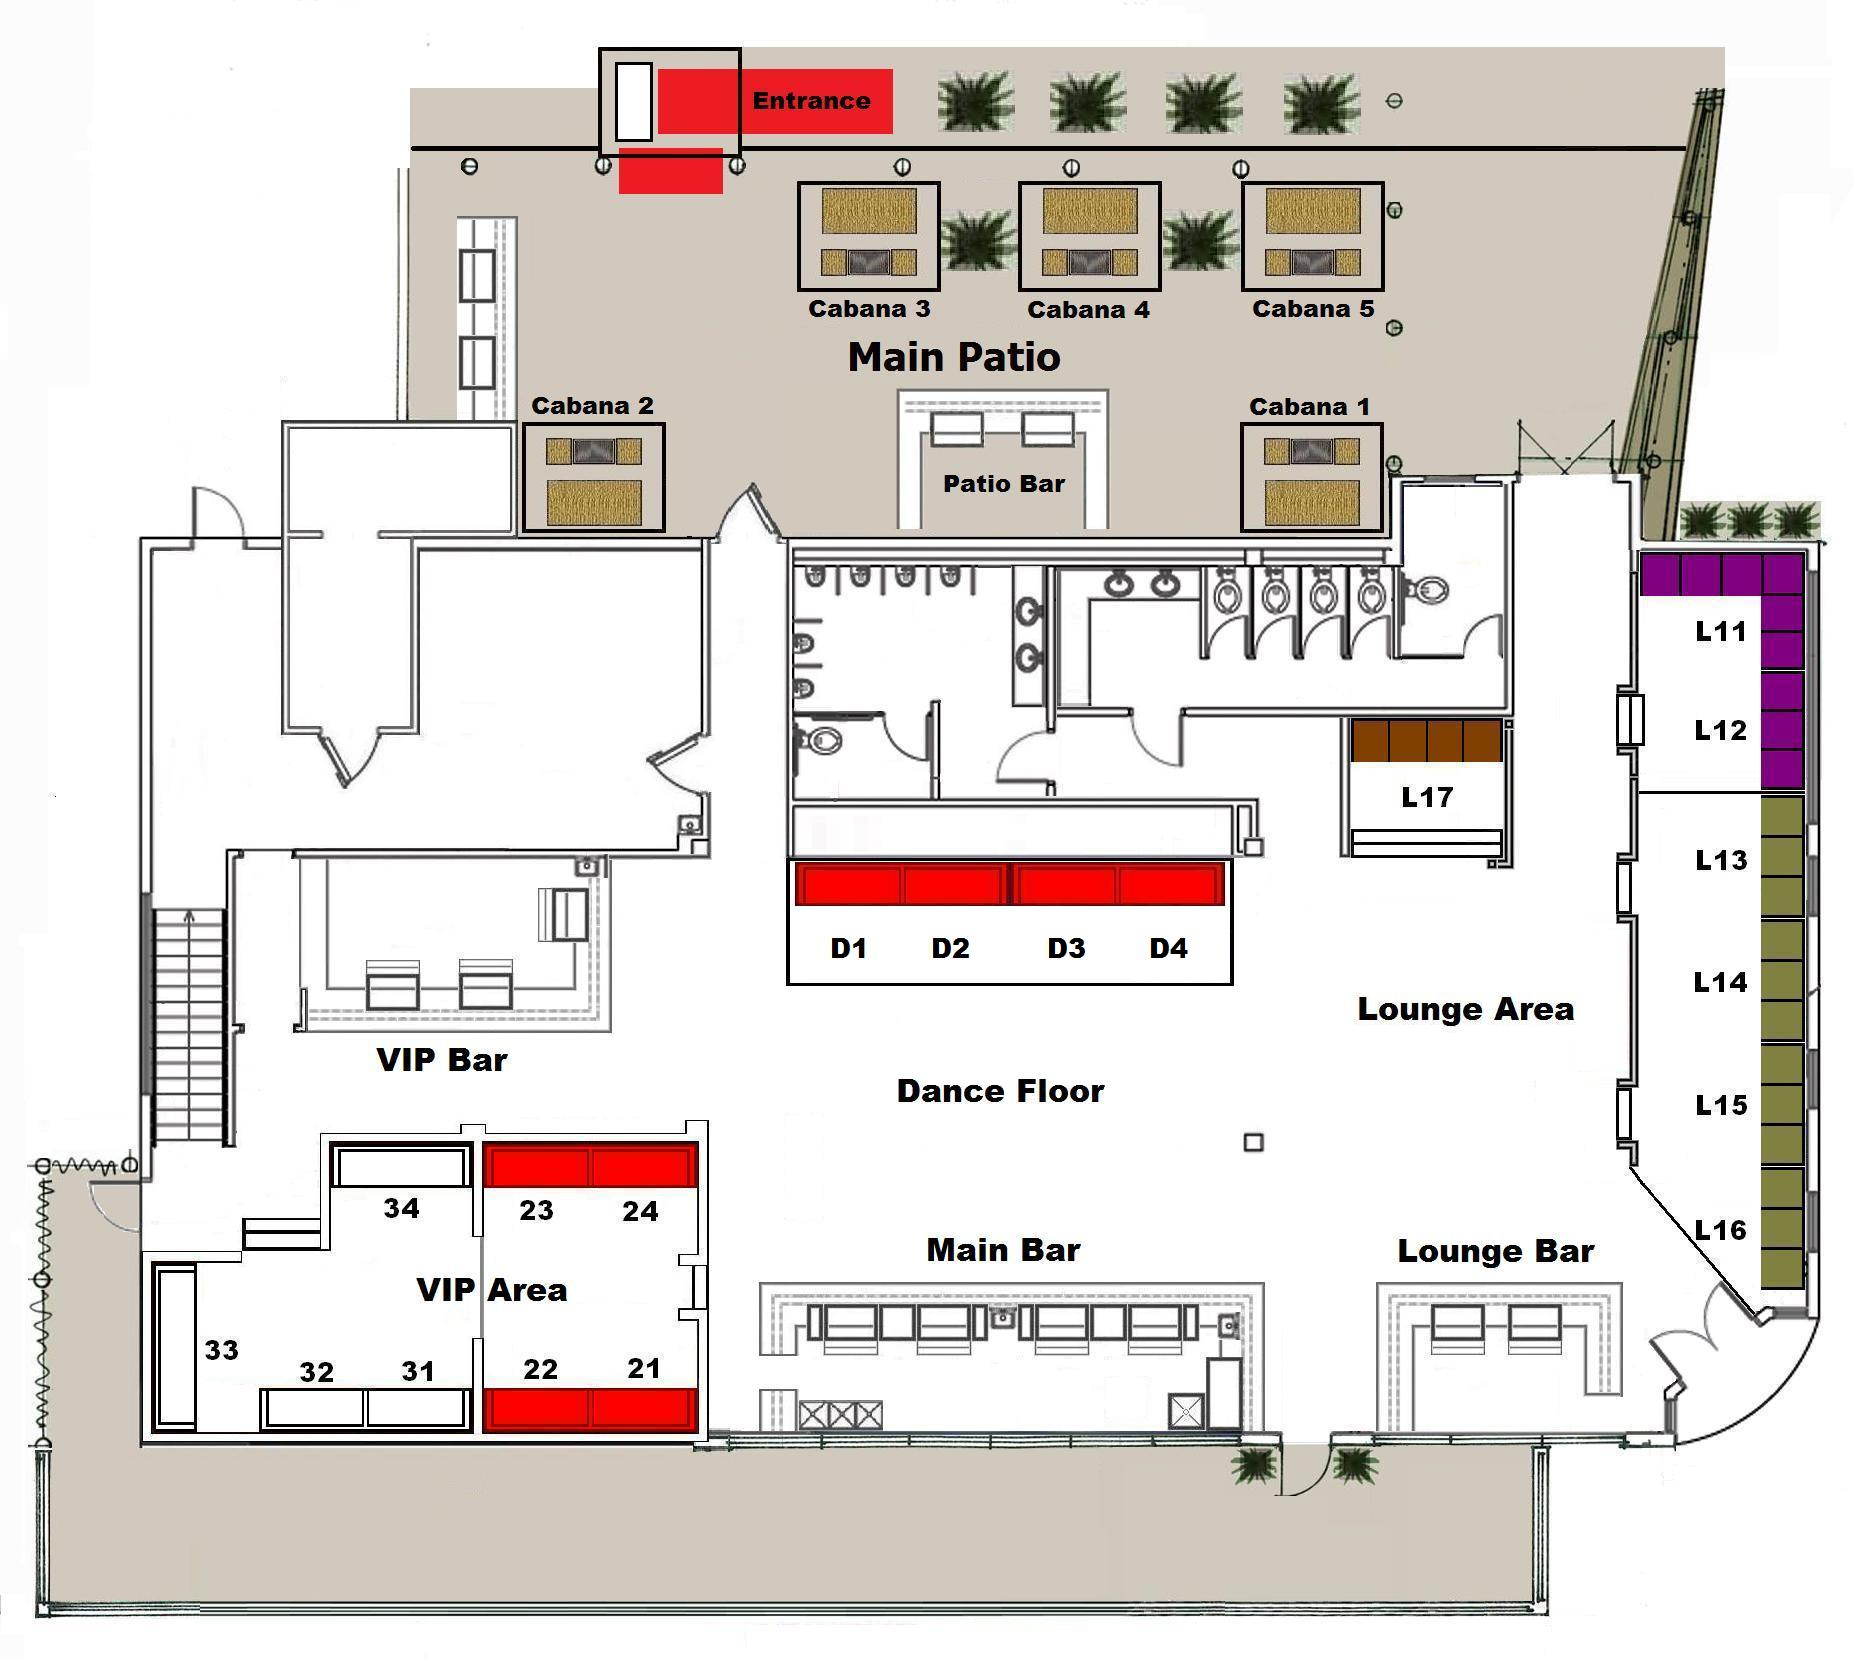 Night Club Floor Plans http://yyupi.net/night-club-floor-plans/